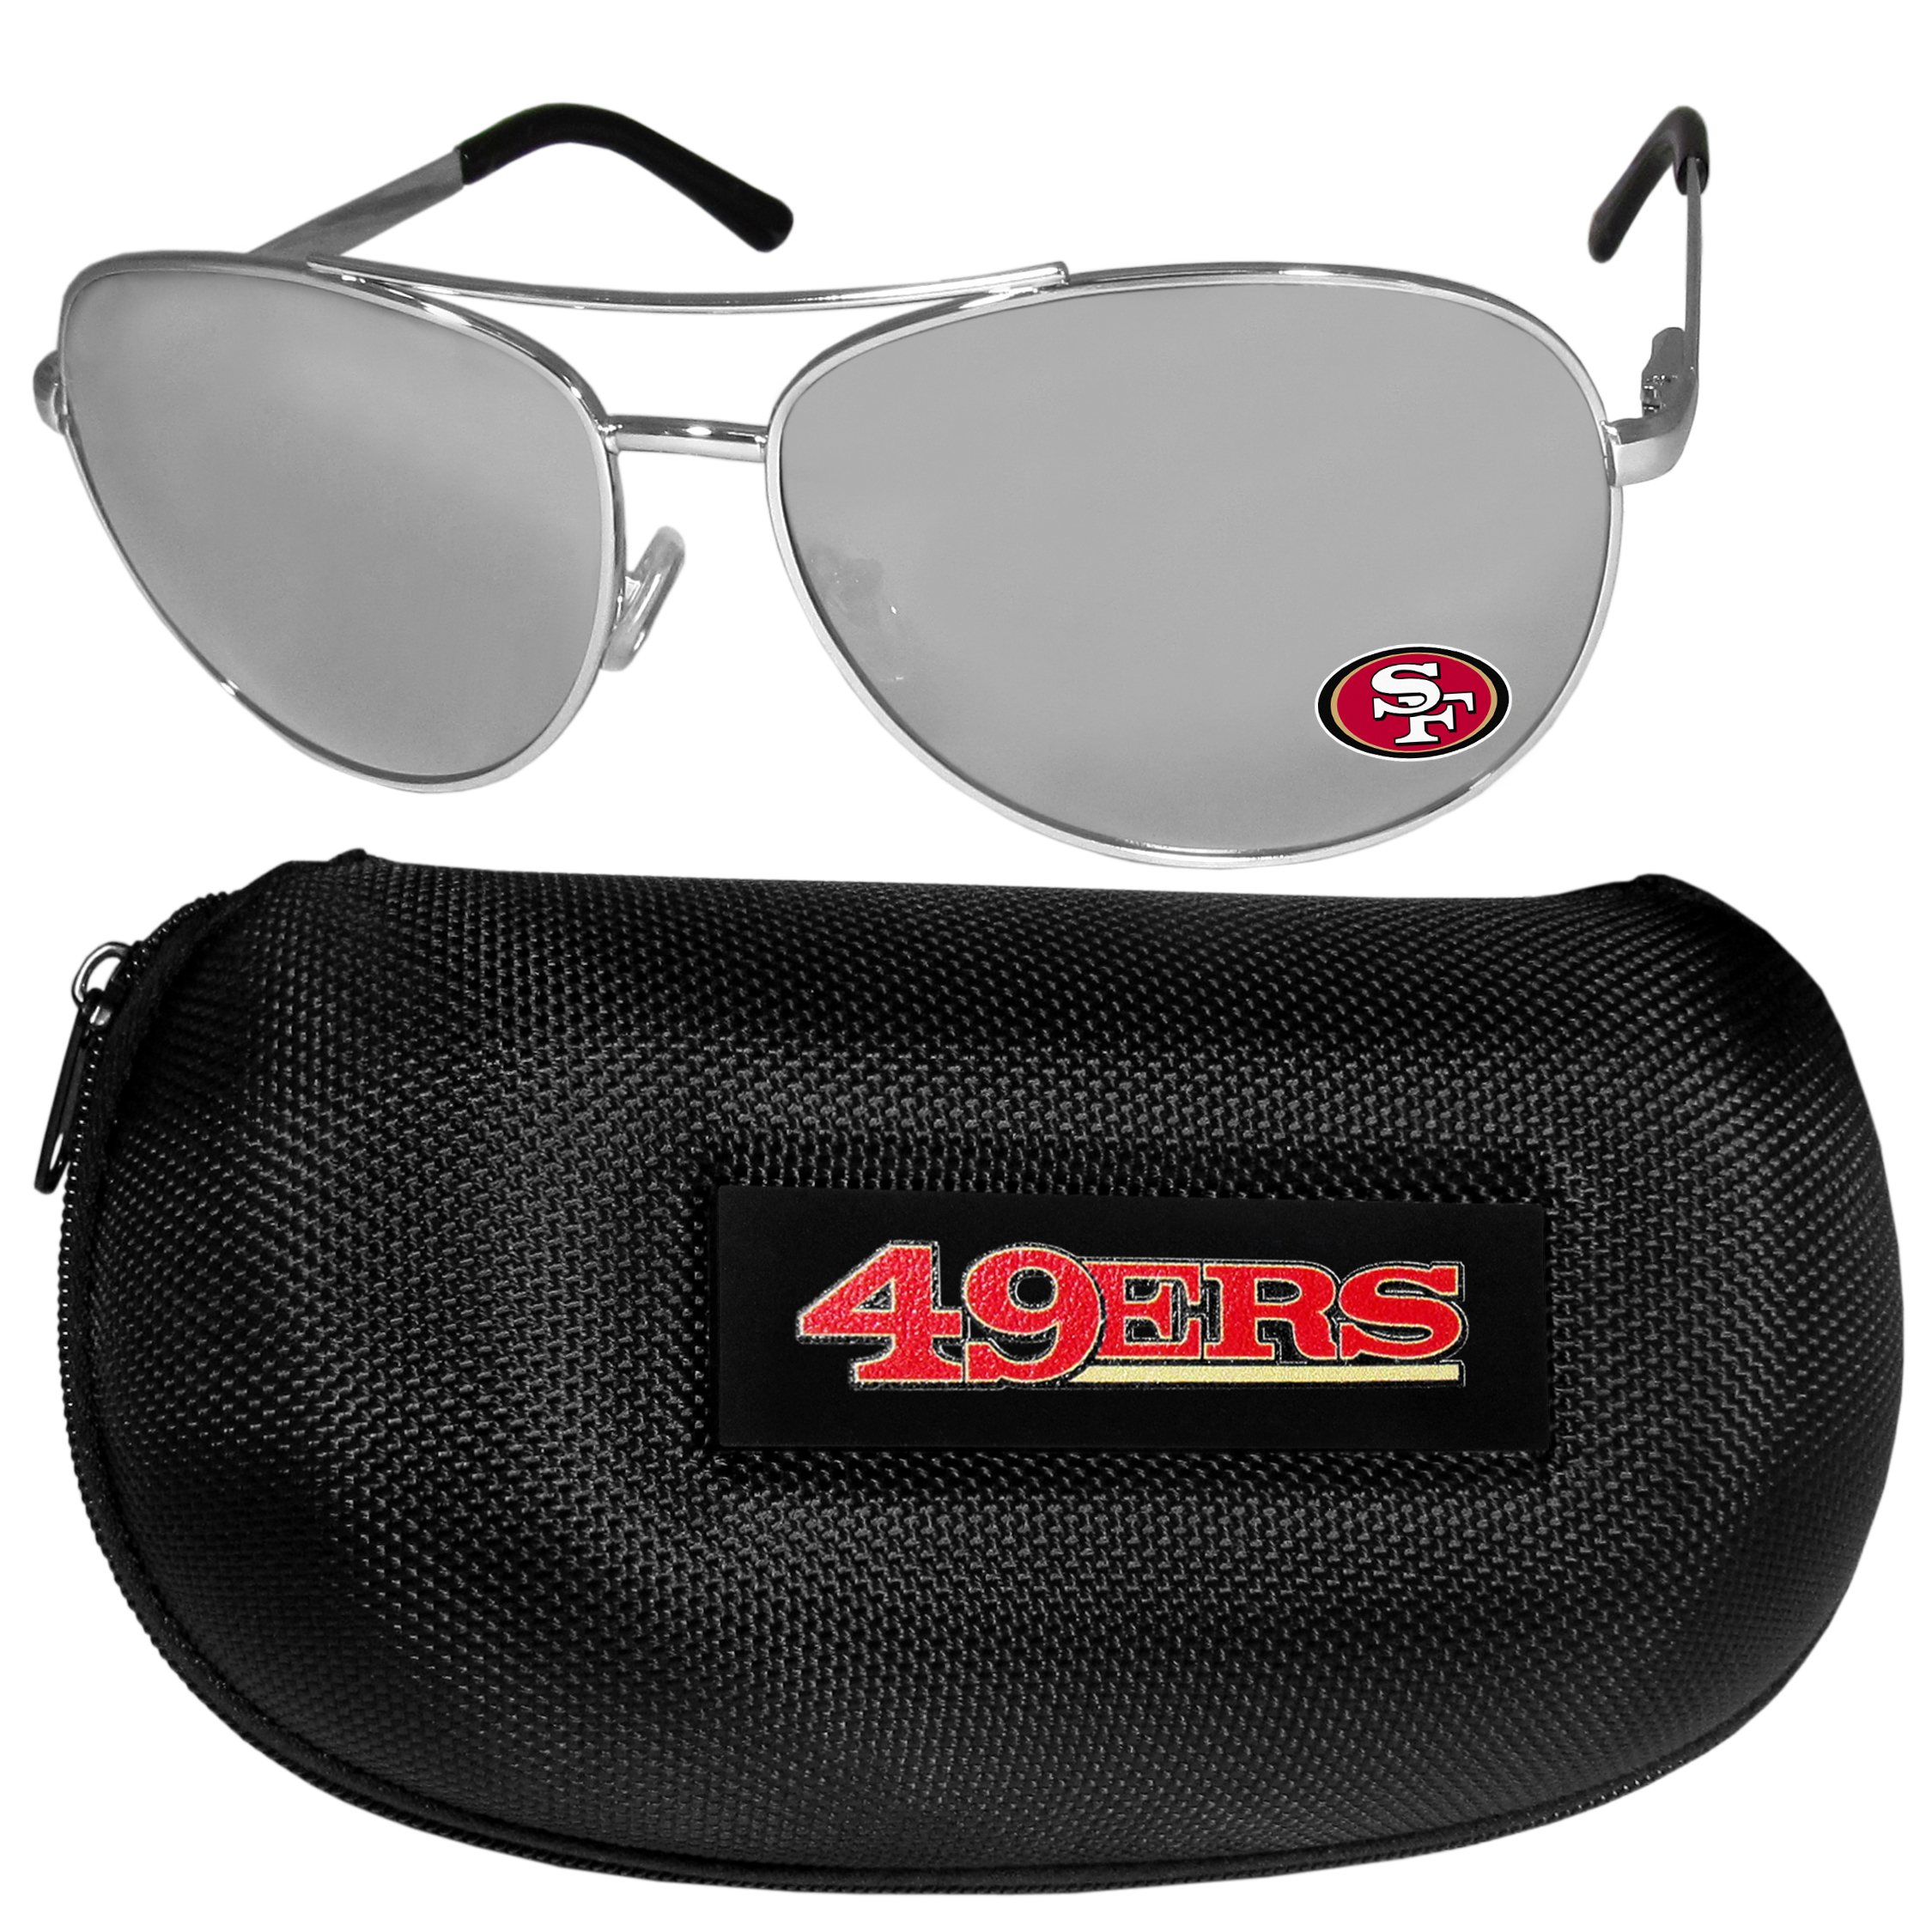 San Francisco 49ers Aviator Sunglasses and Zippered Carrying Case - Aviator sunglasses are truly an iconic retro fashion statement that never goes out-of-style. Our San Francisco 49ers  aviator sunglasses pair this classic look with your love of the game. The iridium coated lenses reduce glare while driving, boating, golfing and their 100% UVA/UVB rating provides you with the maximum UV protection for all your outdoor activities. A millennial favorite, these affordable designer frames are the perfect eyewear accessory for a sports fan that is looking for high-quality at an affordable price. The durable, flex hinged frames are tough enough for hiking and camping or if you prefer sun bathing by the pool or on the beach these shades will really stand the test of time. The sunglasses come with a hard shell zippered case which has a large team logo on the lid that will make even the most die-hard fan proud!